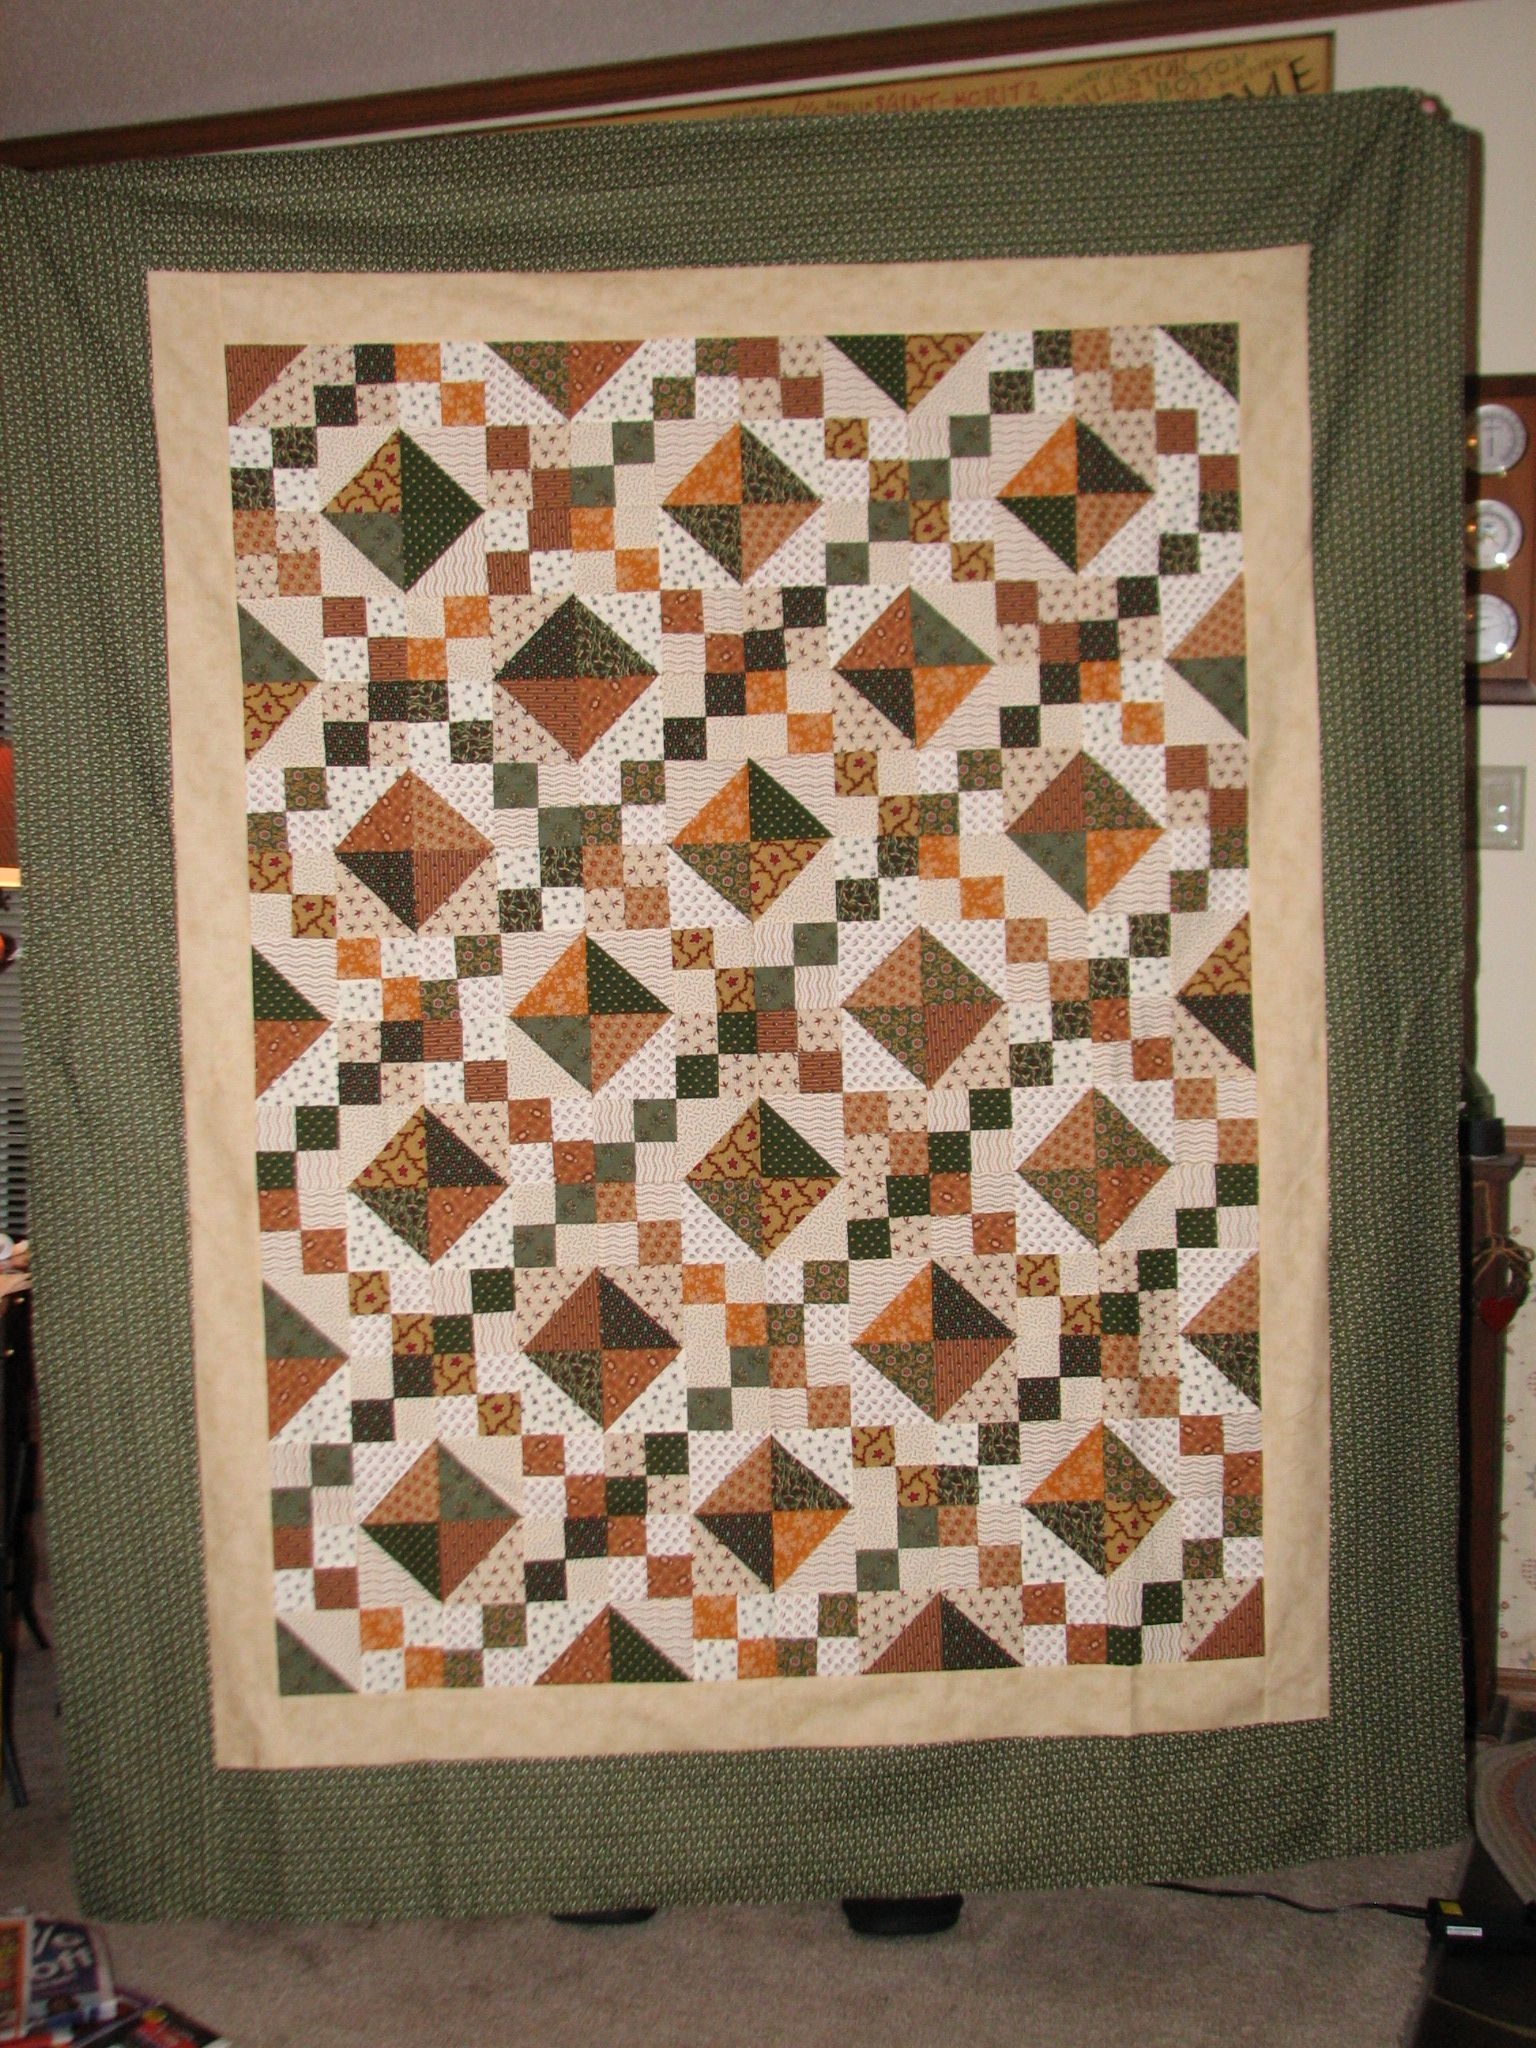 My Mystery Quilt A Class I Took In My Quilt Guild Golden Oldie Design By Judy Hopkins Quilt Guild Mystery Quilt Patch Quilt